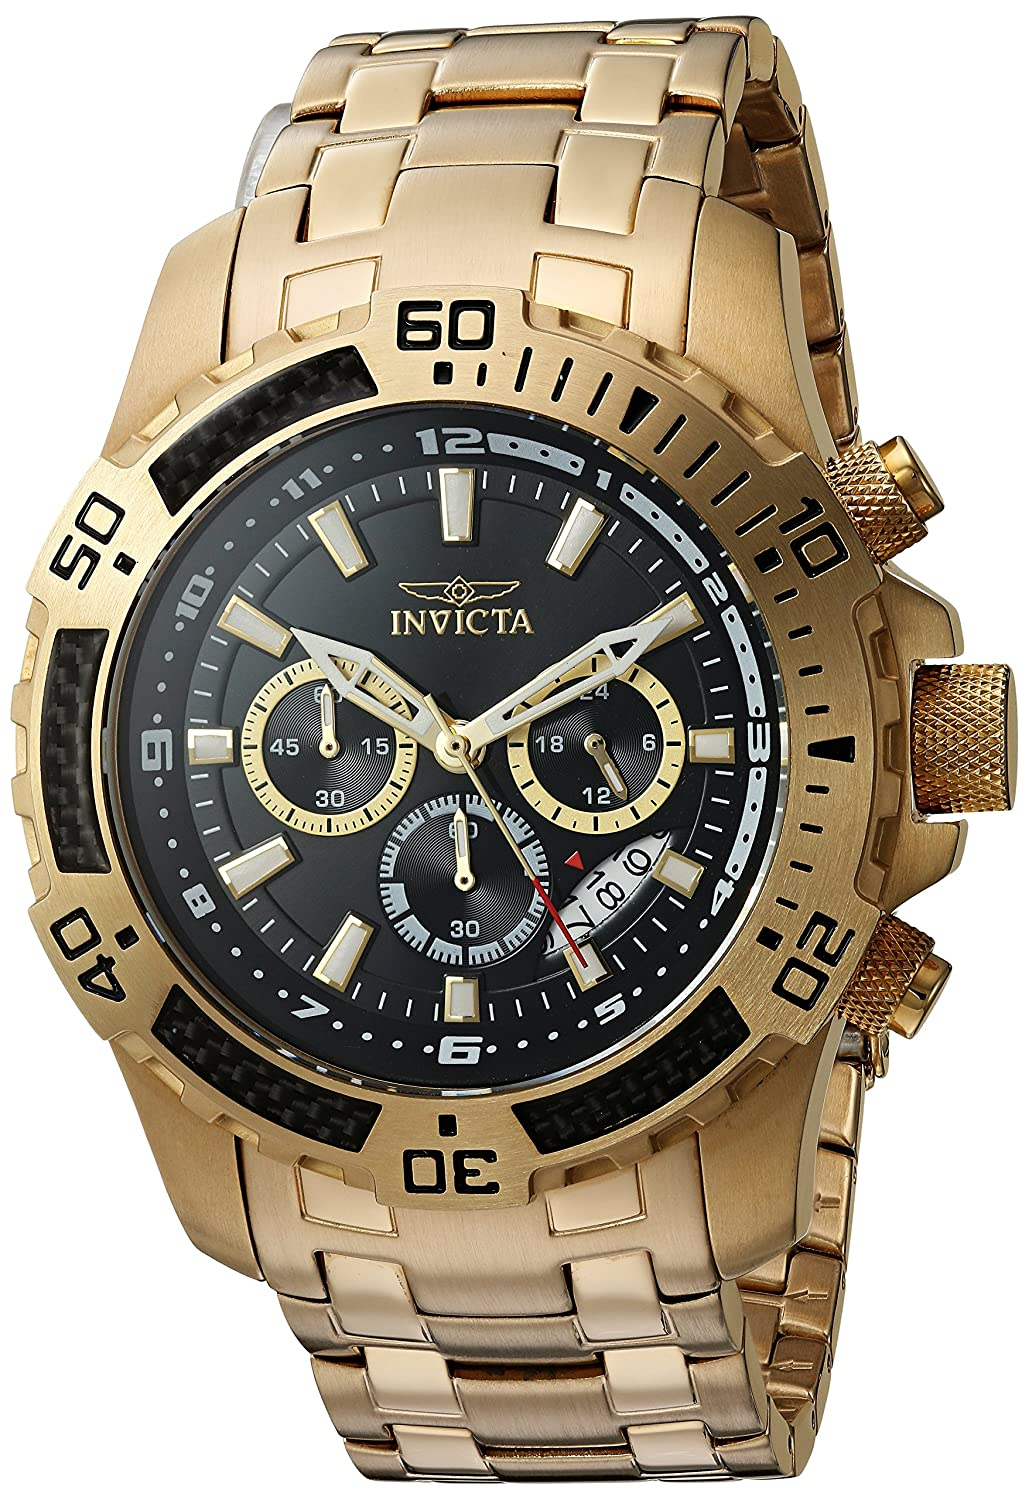 Invicta Men s Pro Diver Quartz Watch with Stainless-Steel Strap, Gold, 25.5 Model 24855